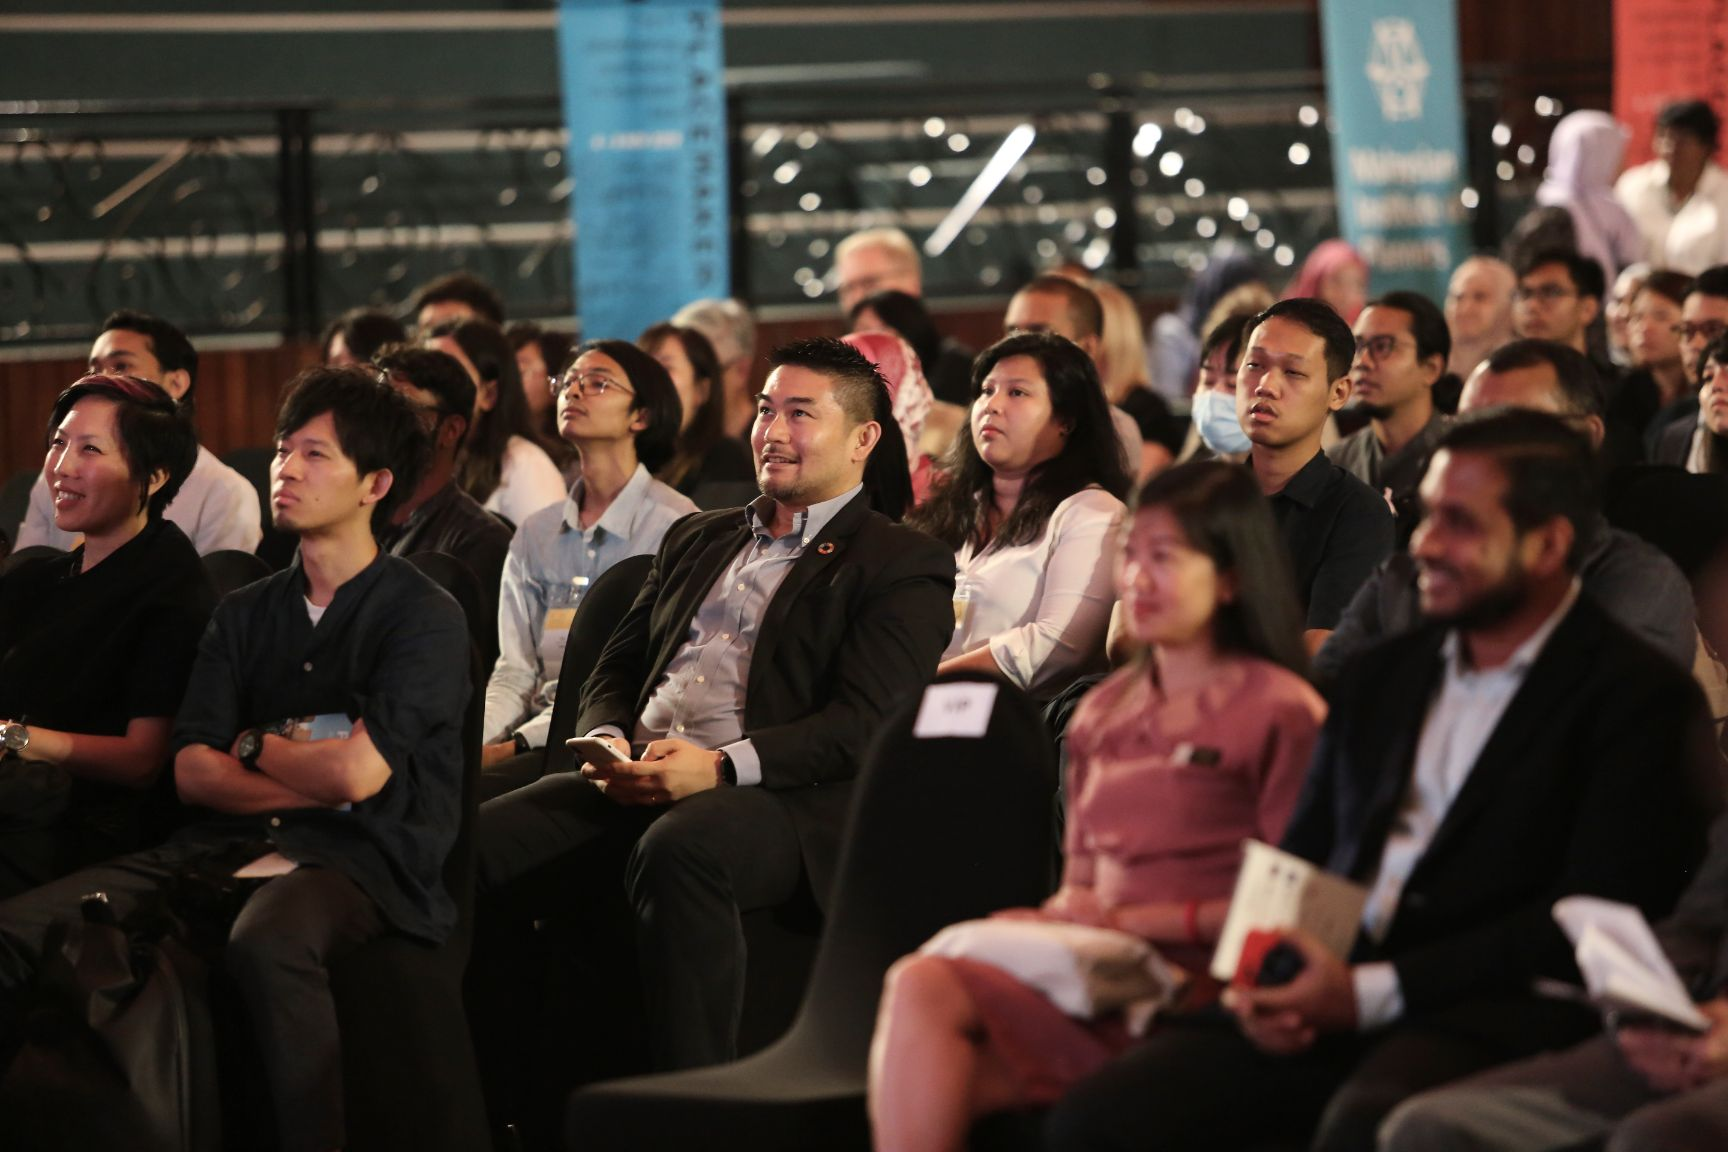 Placemaker Week ASEAN culminated in a sold out two-day plenary session at the Chin Woo Stadium in the heart of Downtown KL